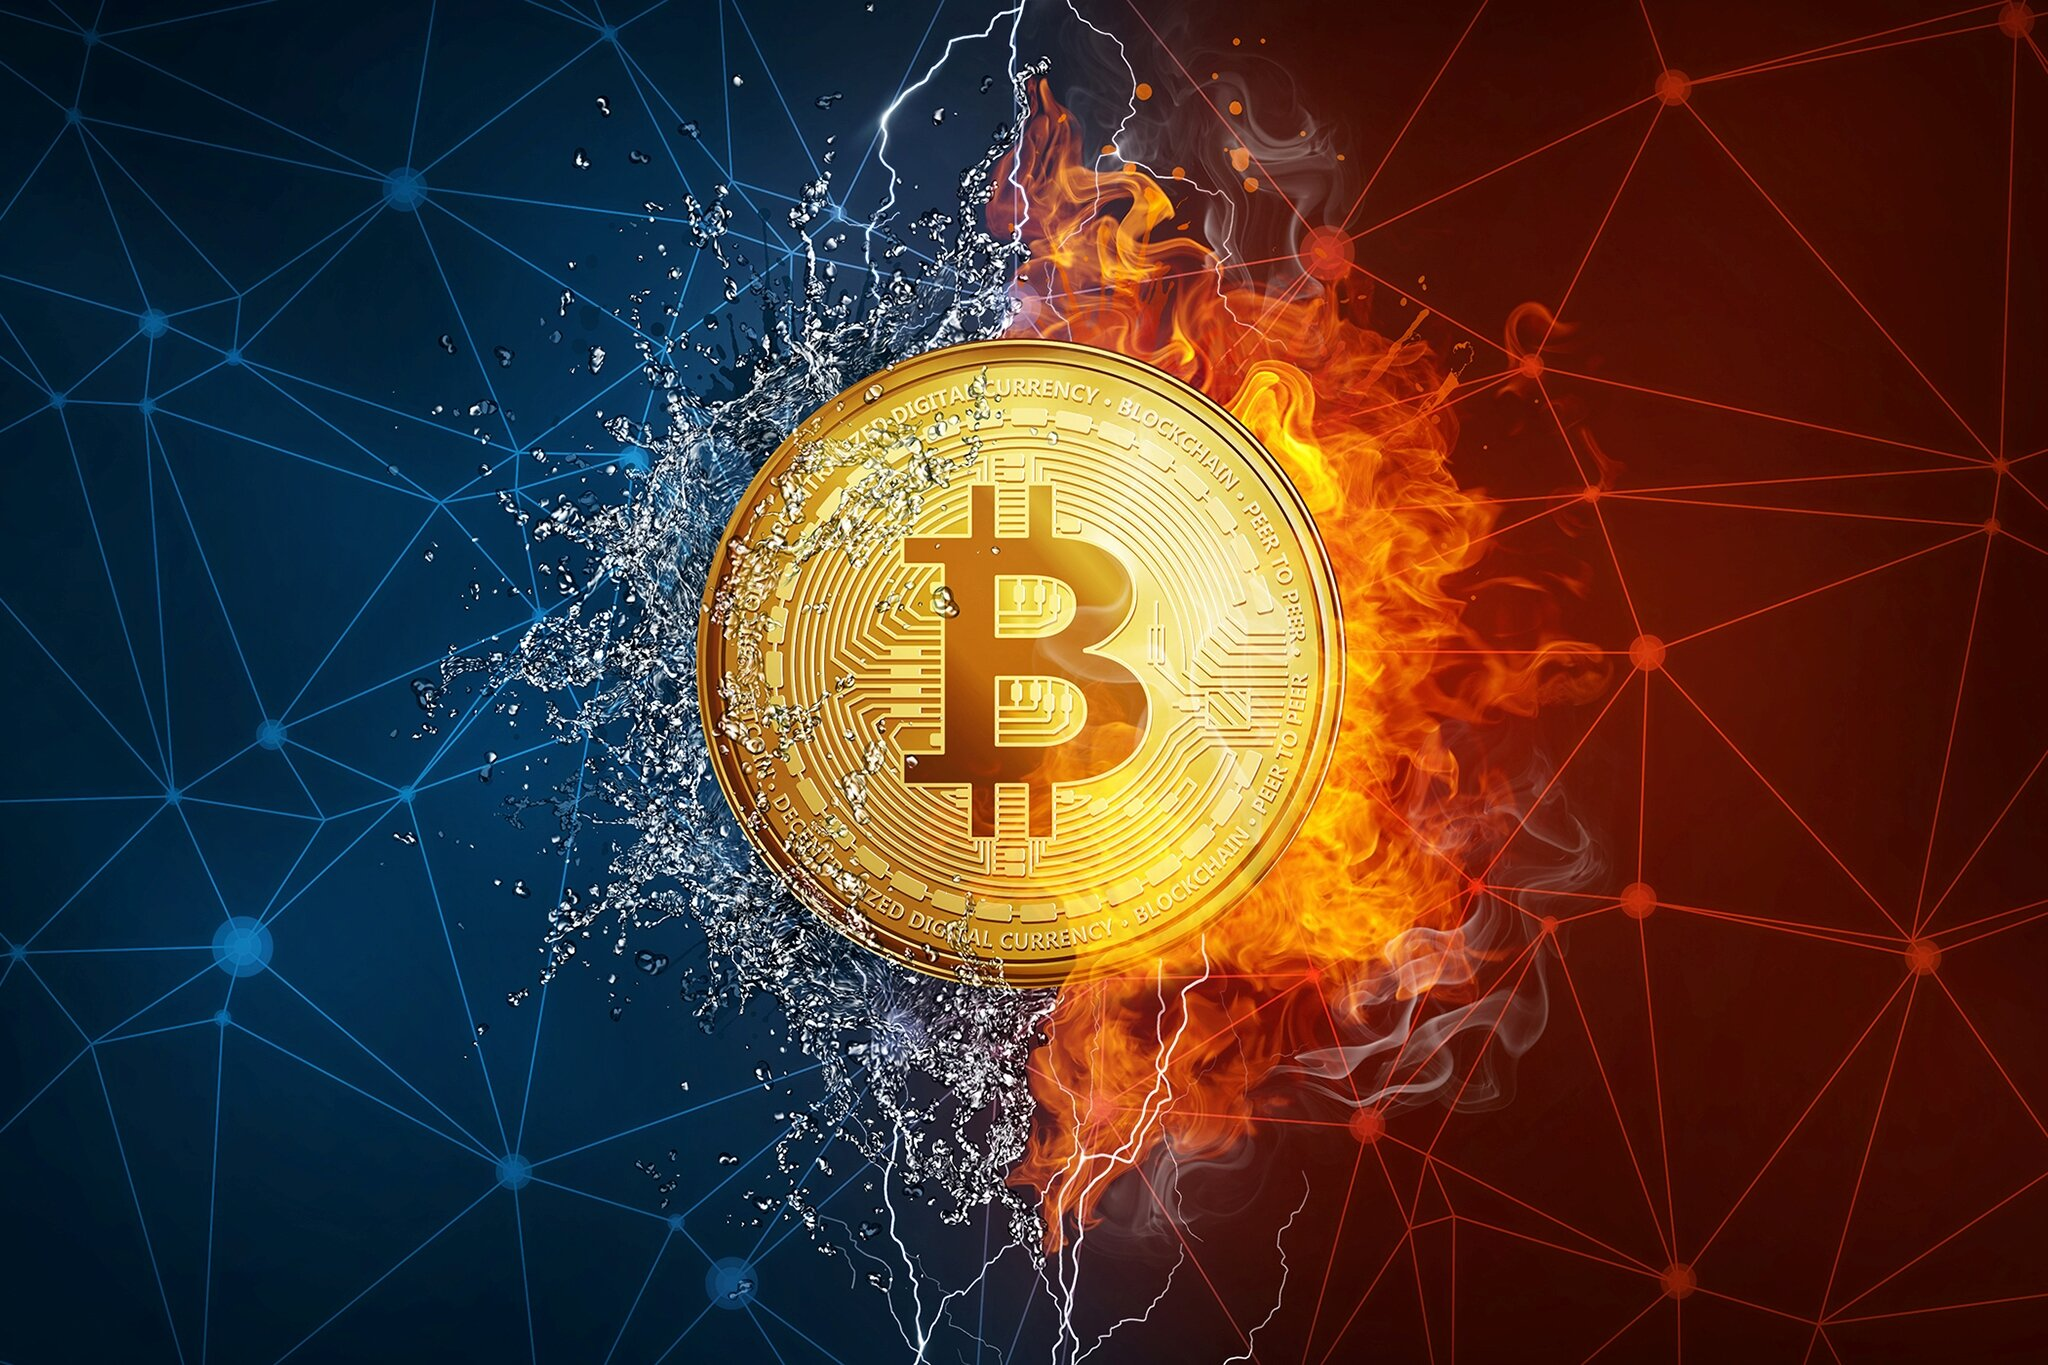 Bitcoin could have significant gains